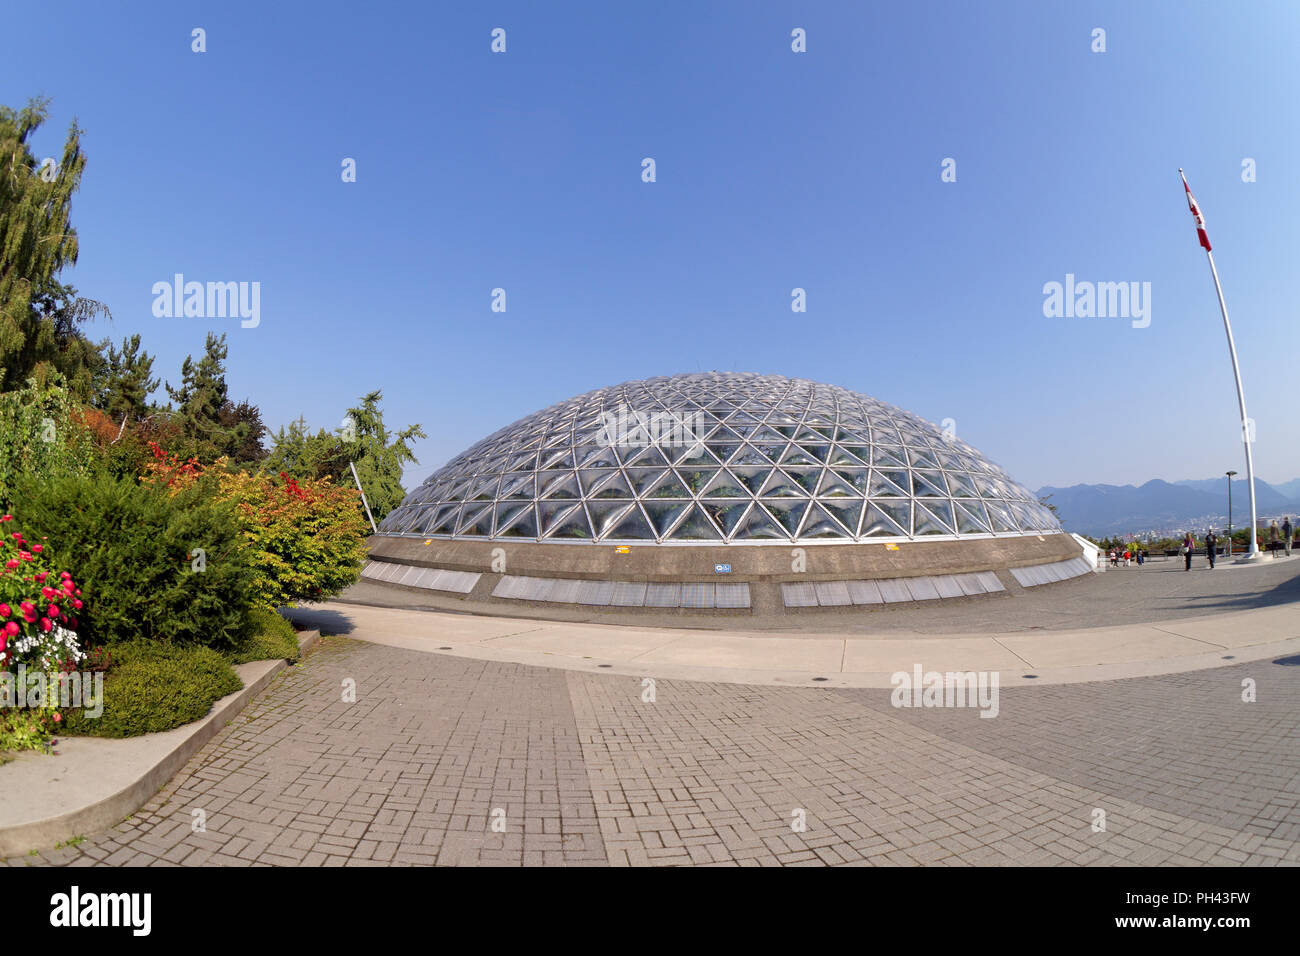 The Bloedel Conservatory in Queen Elizabeth Park, Vancouver, BC, Canada - Stock Image